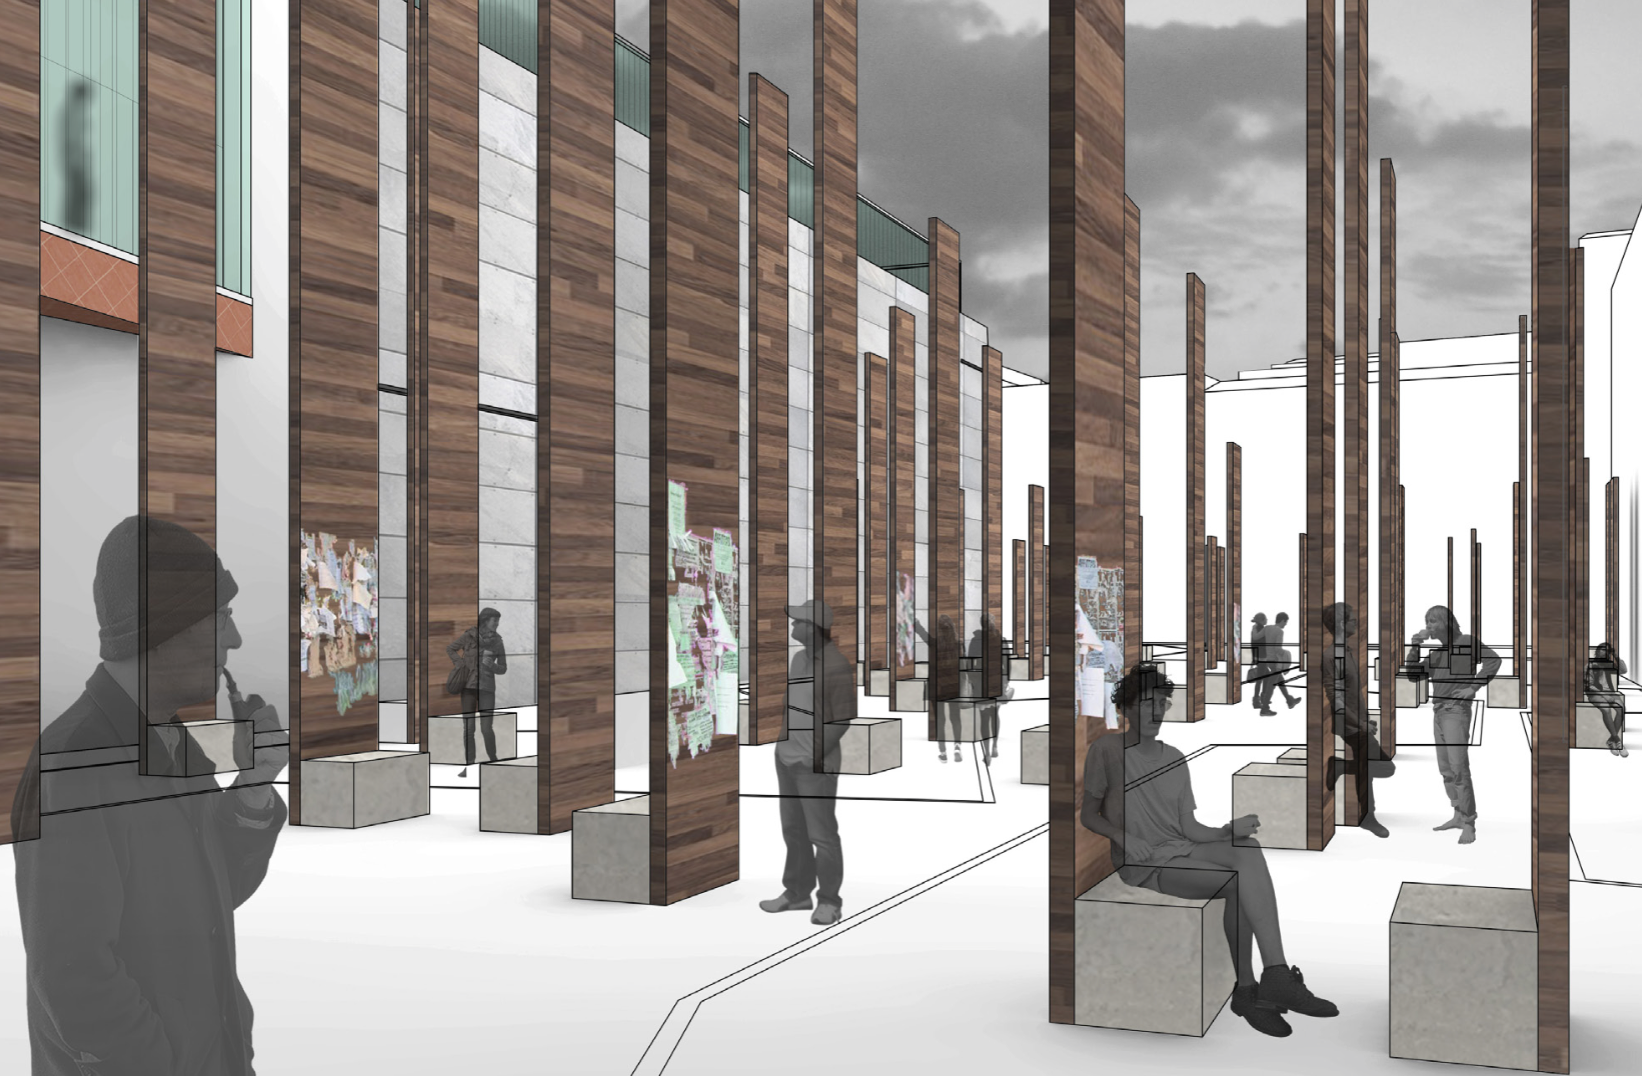 Spring 2015 Most Inspiring Students' Projects competition. Student: Alex Petruso (Architecture).